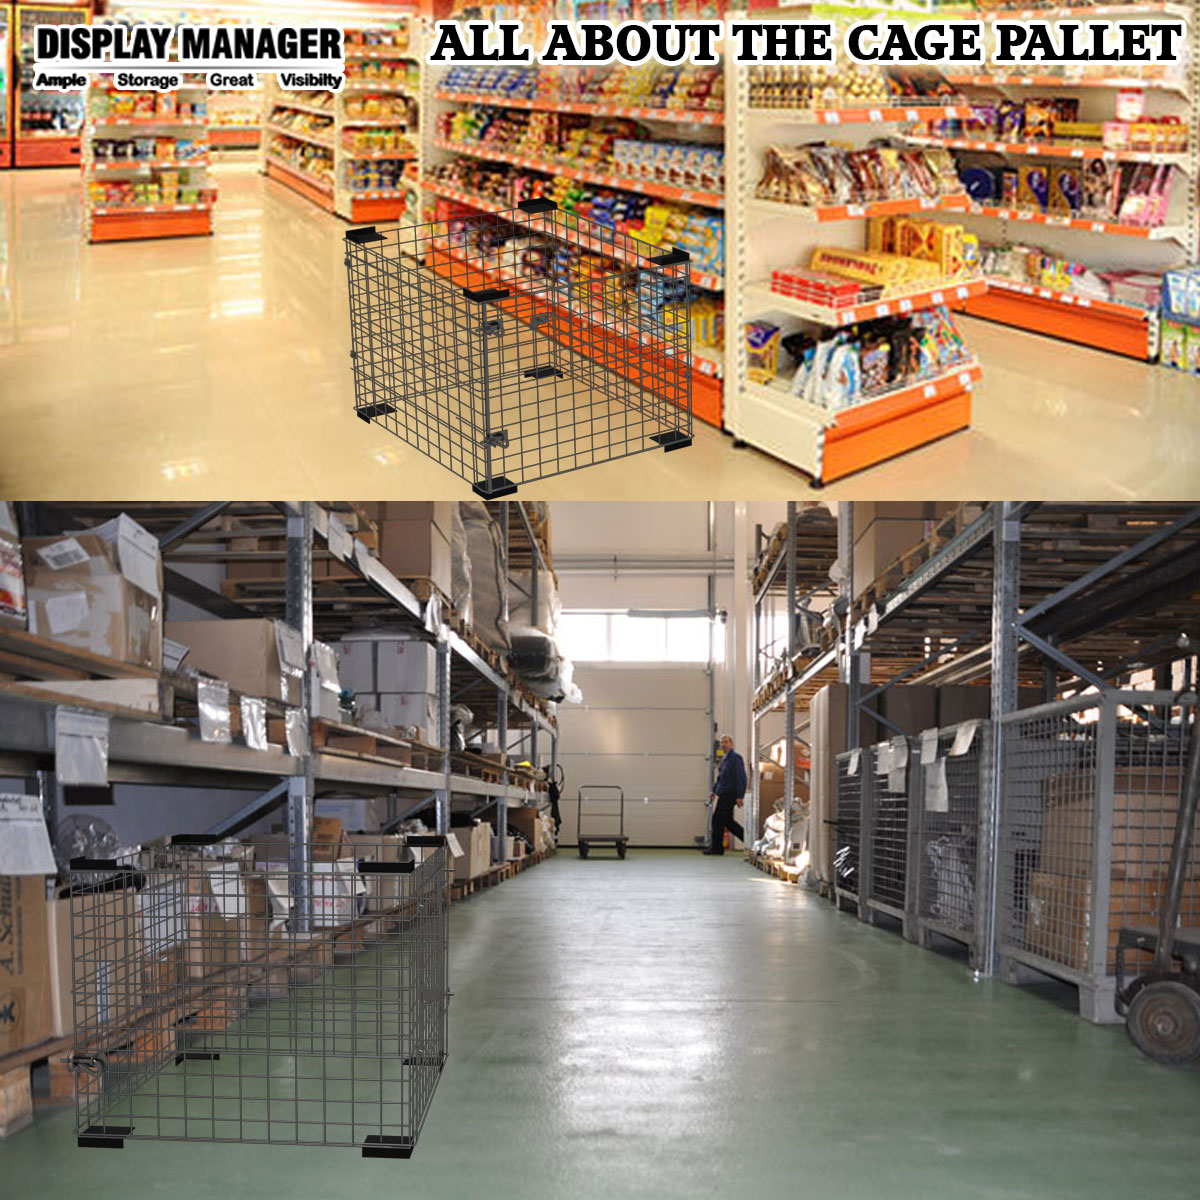 ALL ABOUT THE CAGE PALLET